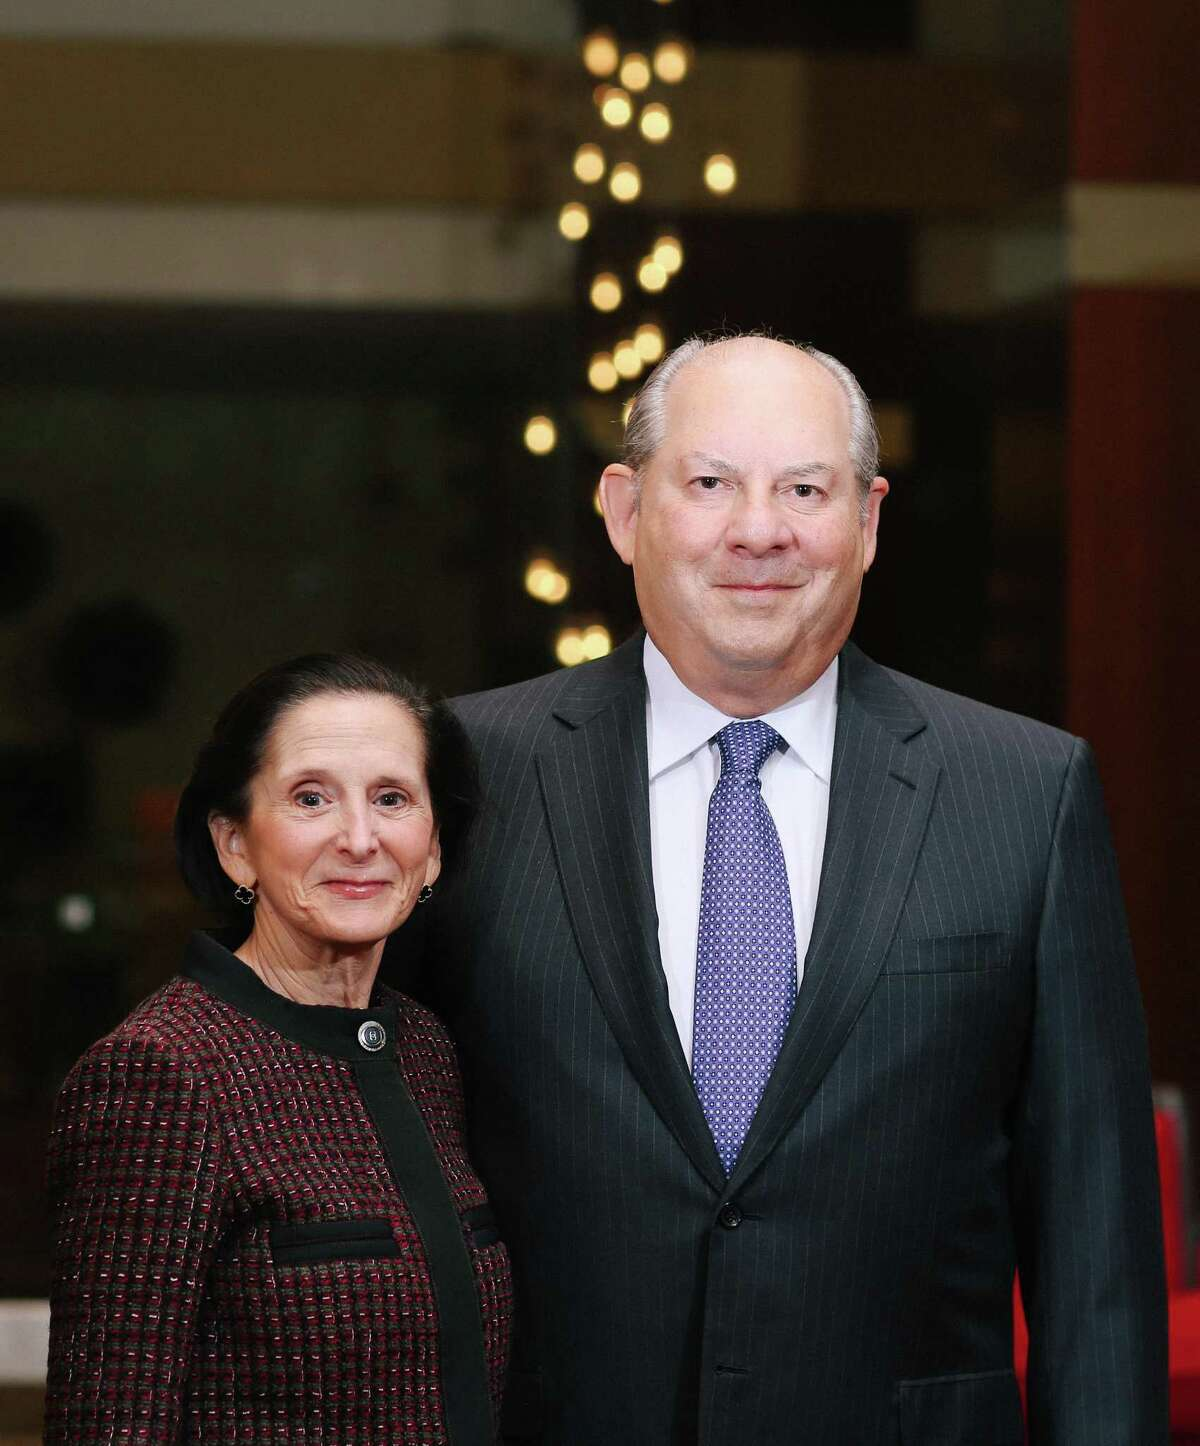 University of Houston alumni Andrea and Andy Diamond have donated $17 million to the school to create the Diamond Scholars Family program, which will help support students who experienced the foster care system.